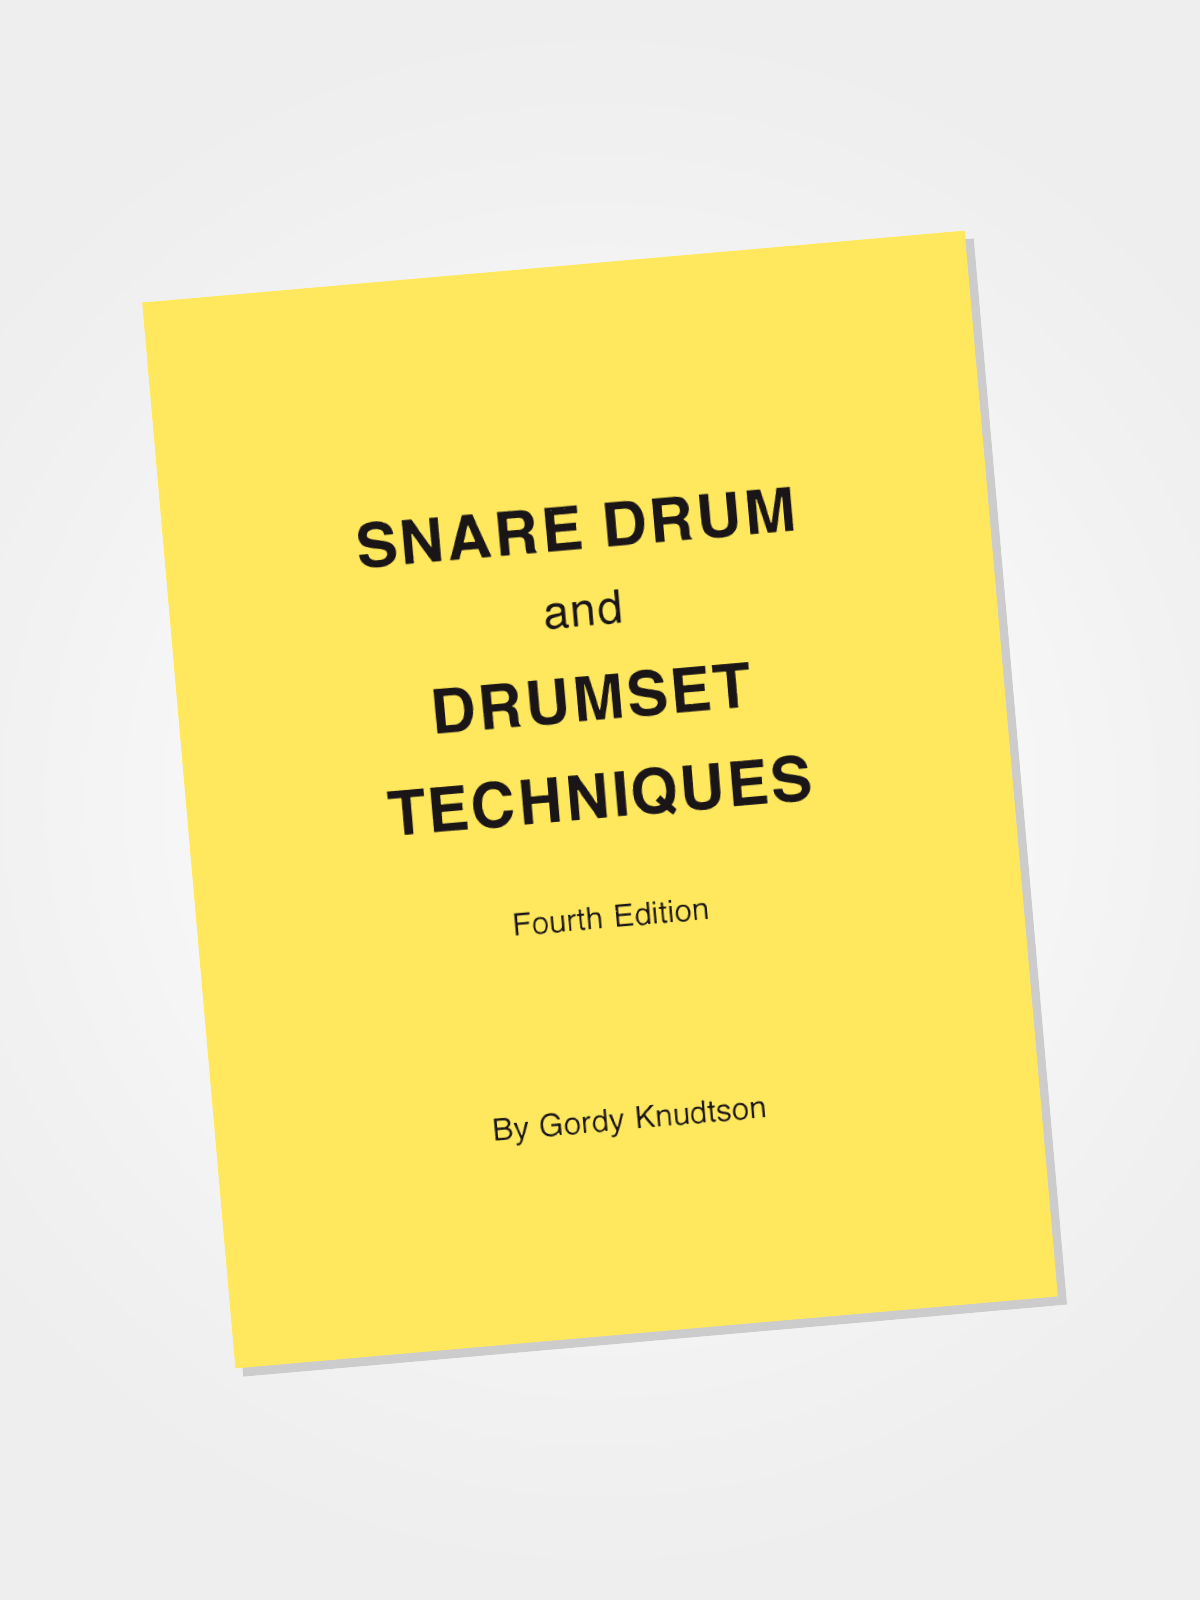 Snare Drum and Drumset Techniques